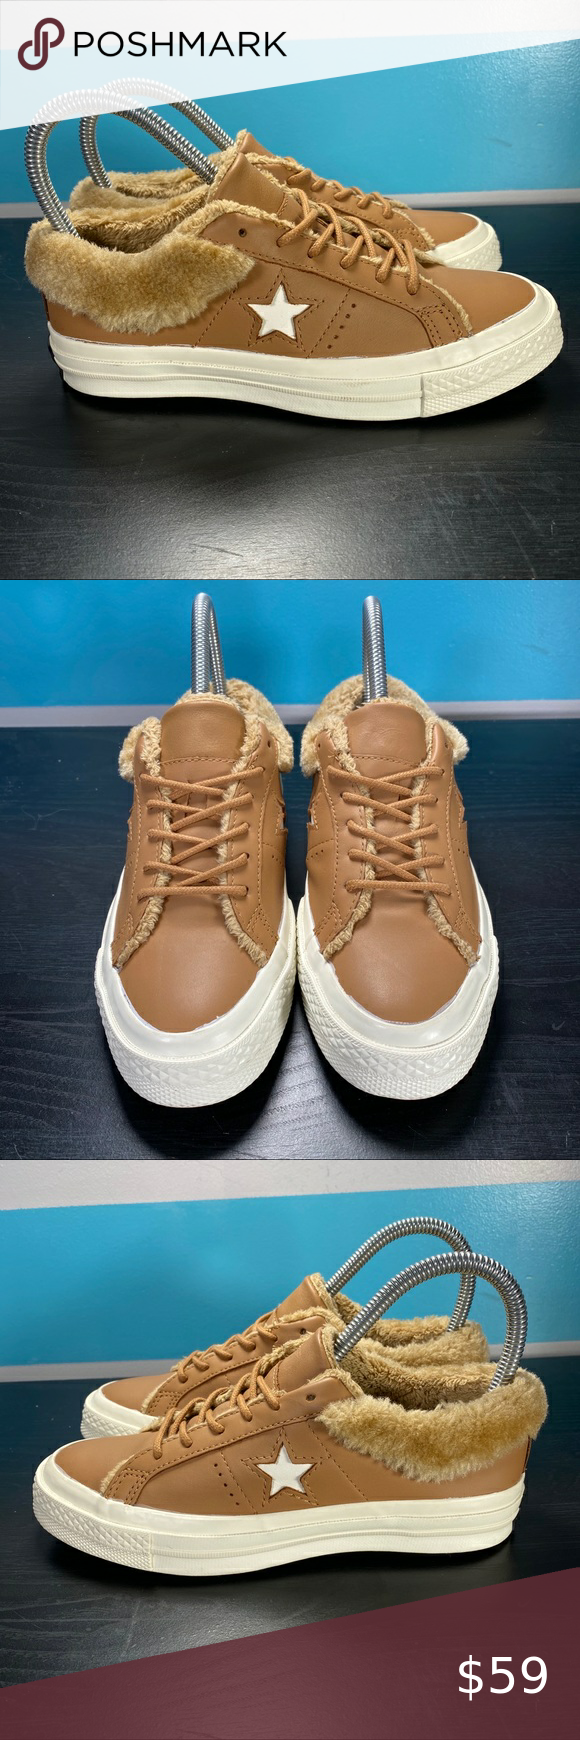 NEW converse one star faux fur sneakers